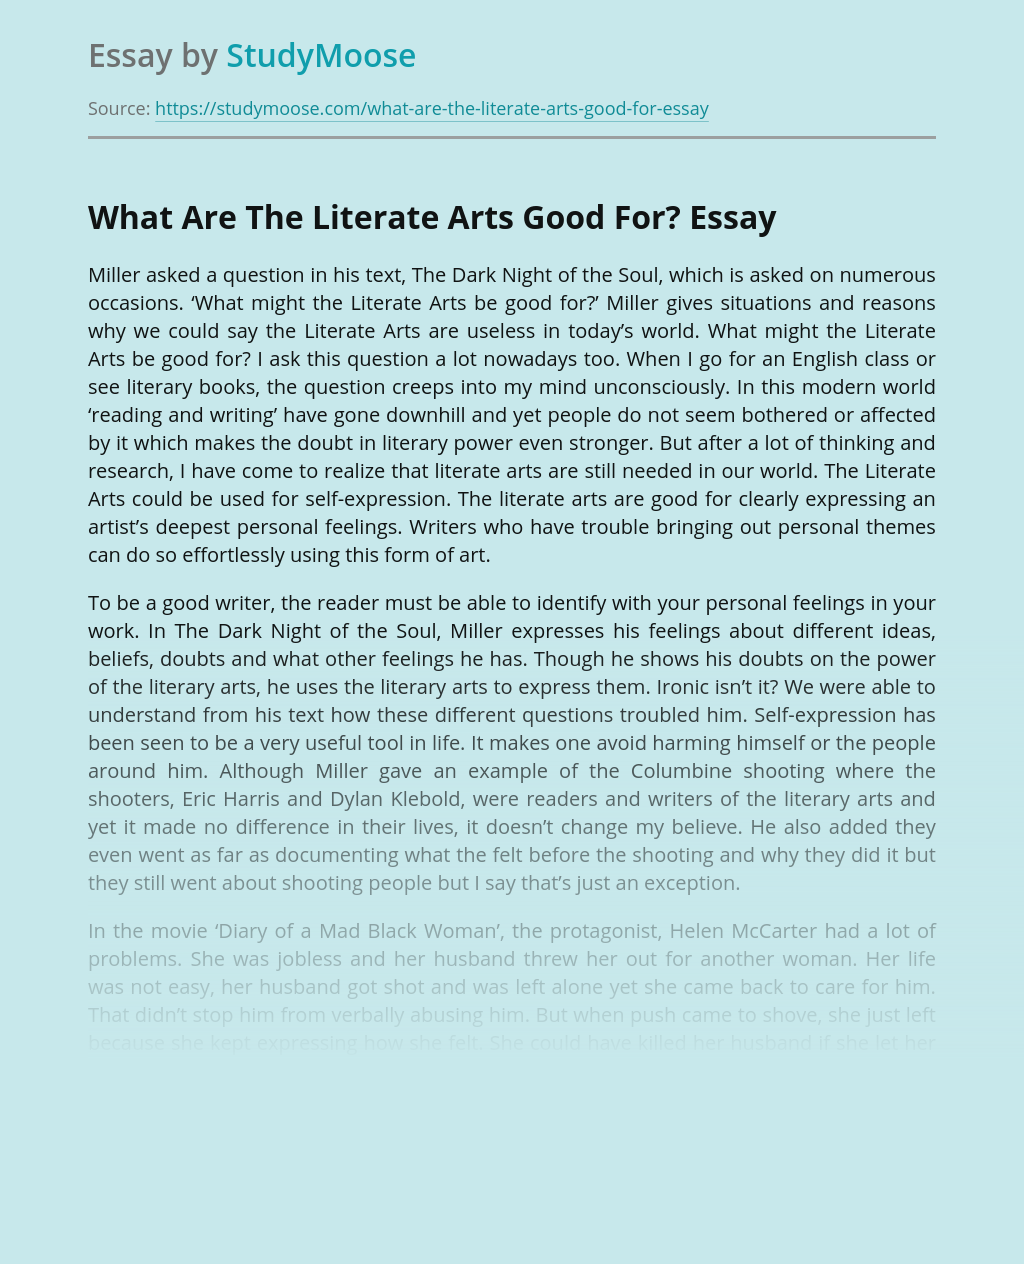 What Are The Literate Arts Good For?